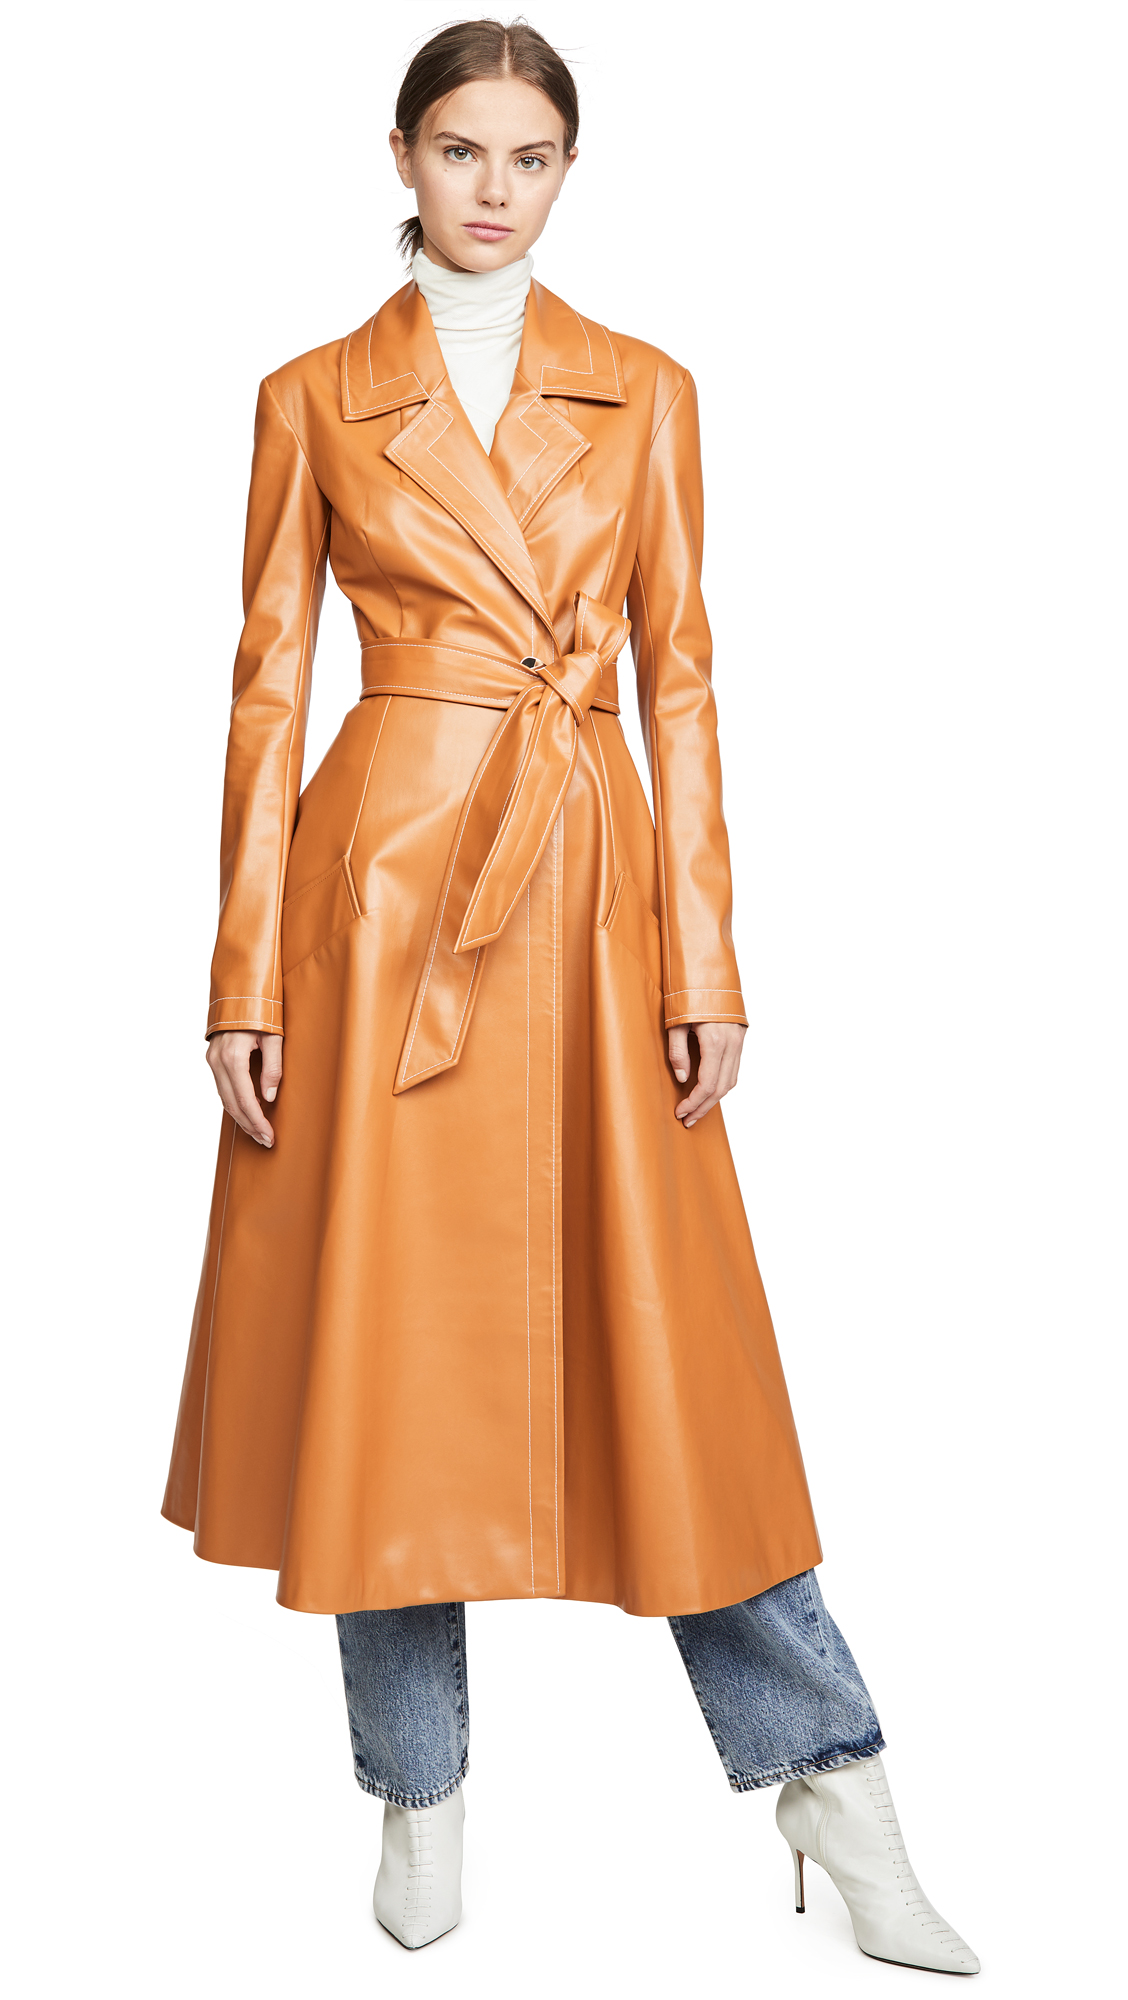 Buy A.W.A.K.E MODE Gingerbread Coat online beautiful A.W.A.K.E MODE Jackets, Coats, Trench Coats